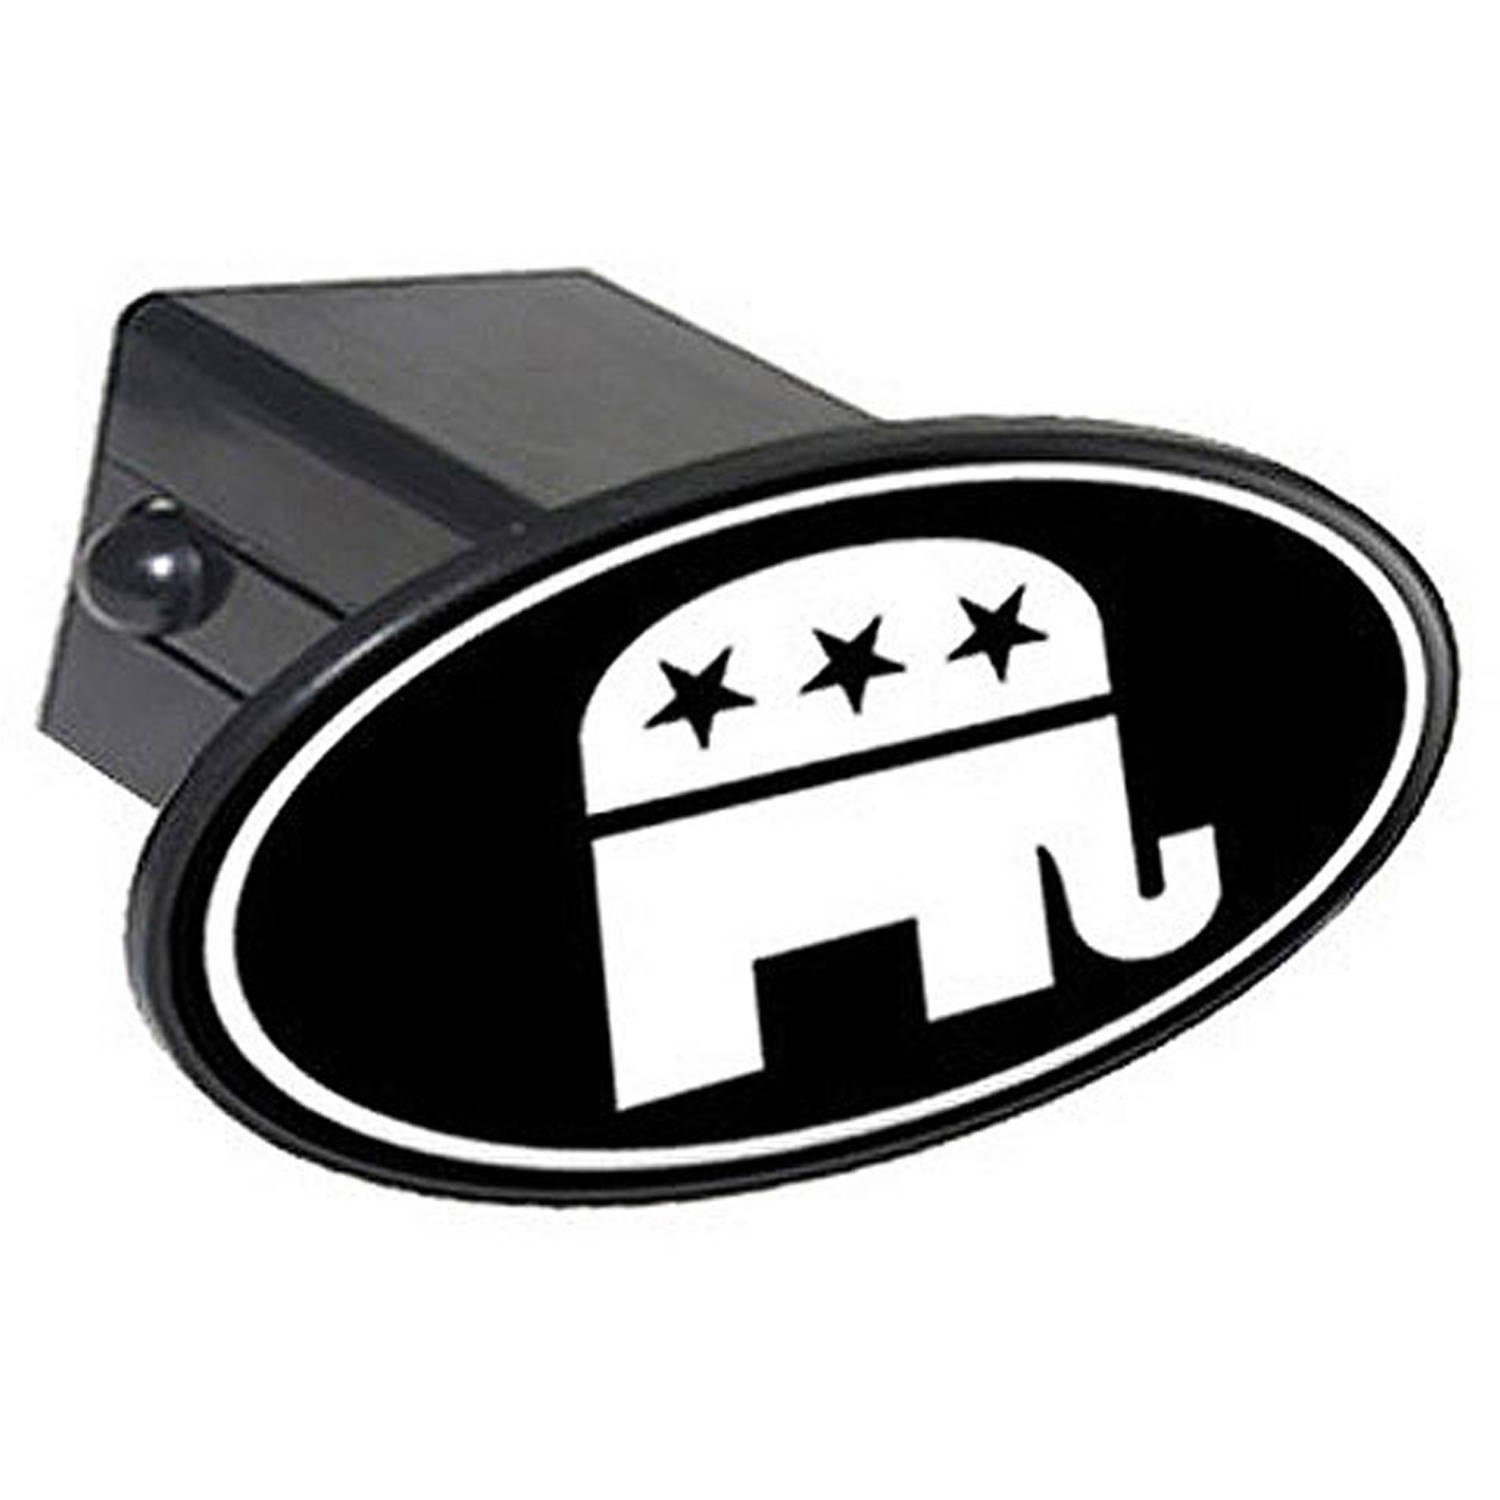 "Republican Elephant White On Black 2"" Oval Tow Trailer Hitch Cover Plug Insert"